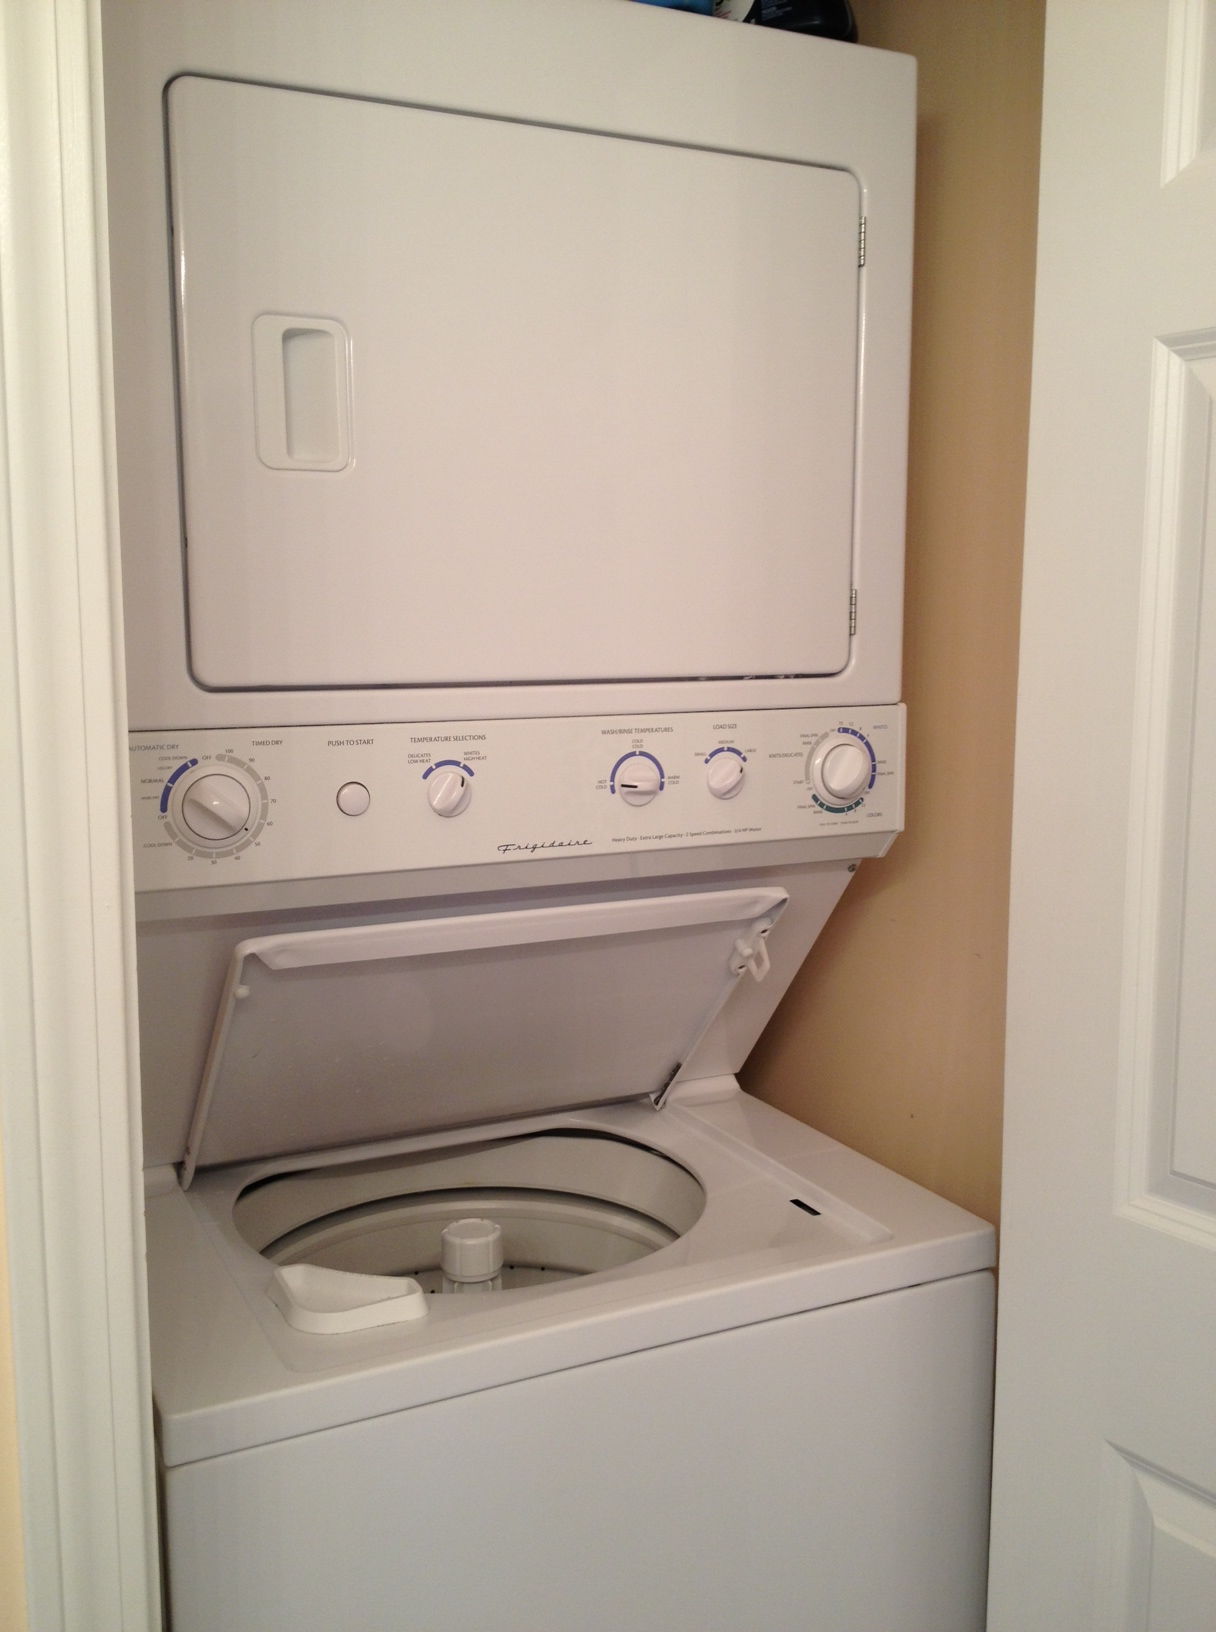 dryer dimensions full size stackable washer and dryer full size